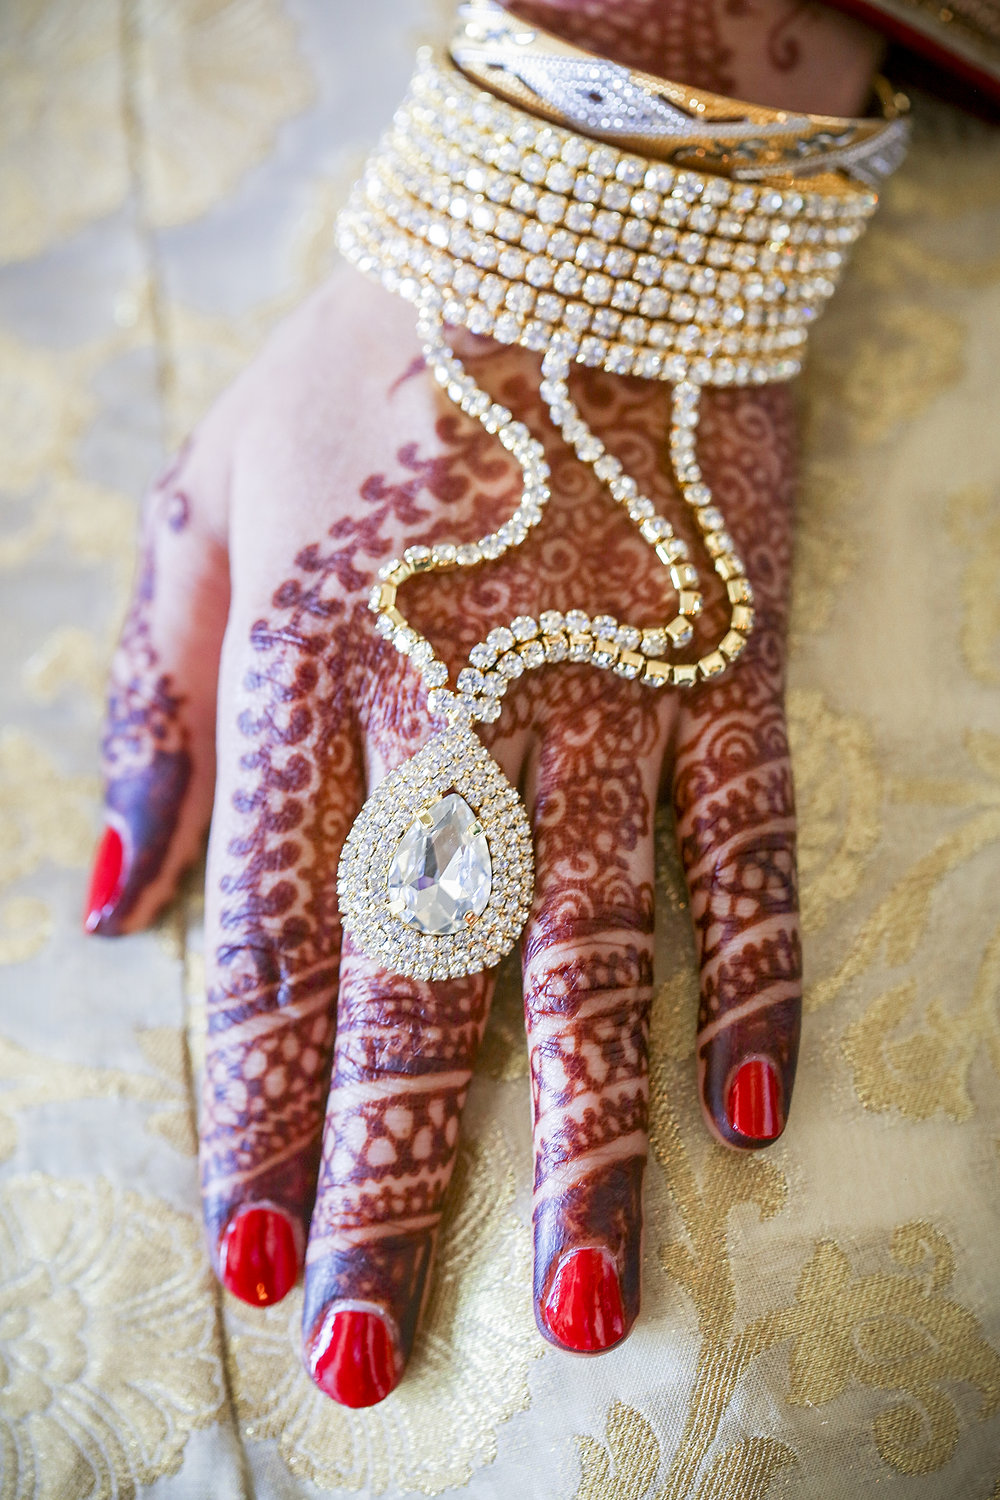 Without a doubt, wedding ceremonies in Pakistan are full of striking, amazing and eye-catching traditions.  I had to dig deeper and learn why the brides hand had drawing in them. I learned this type of art is called Mehndi and it is a form of body art from Ancient India, in which decorative designs are created on a person's body, using a paste, created from the powdered dry leaves of the henna plant.